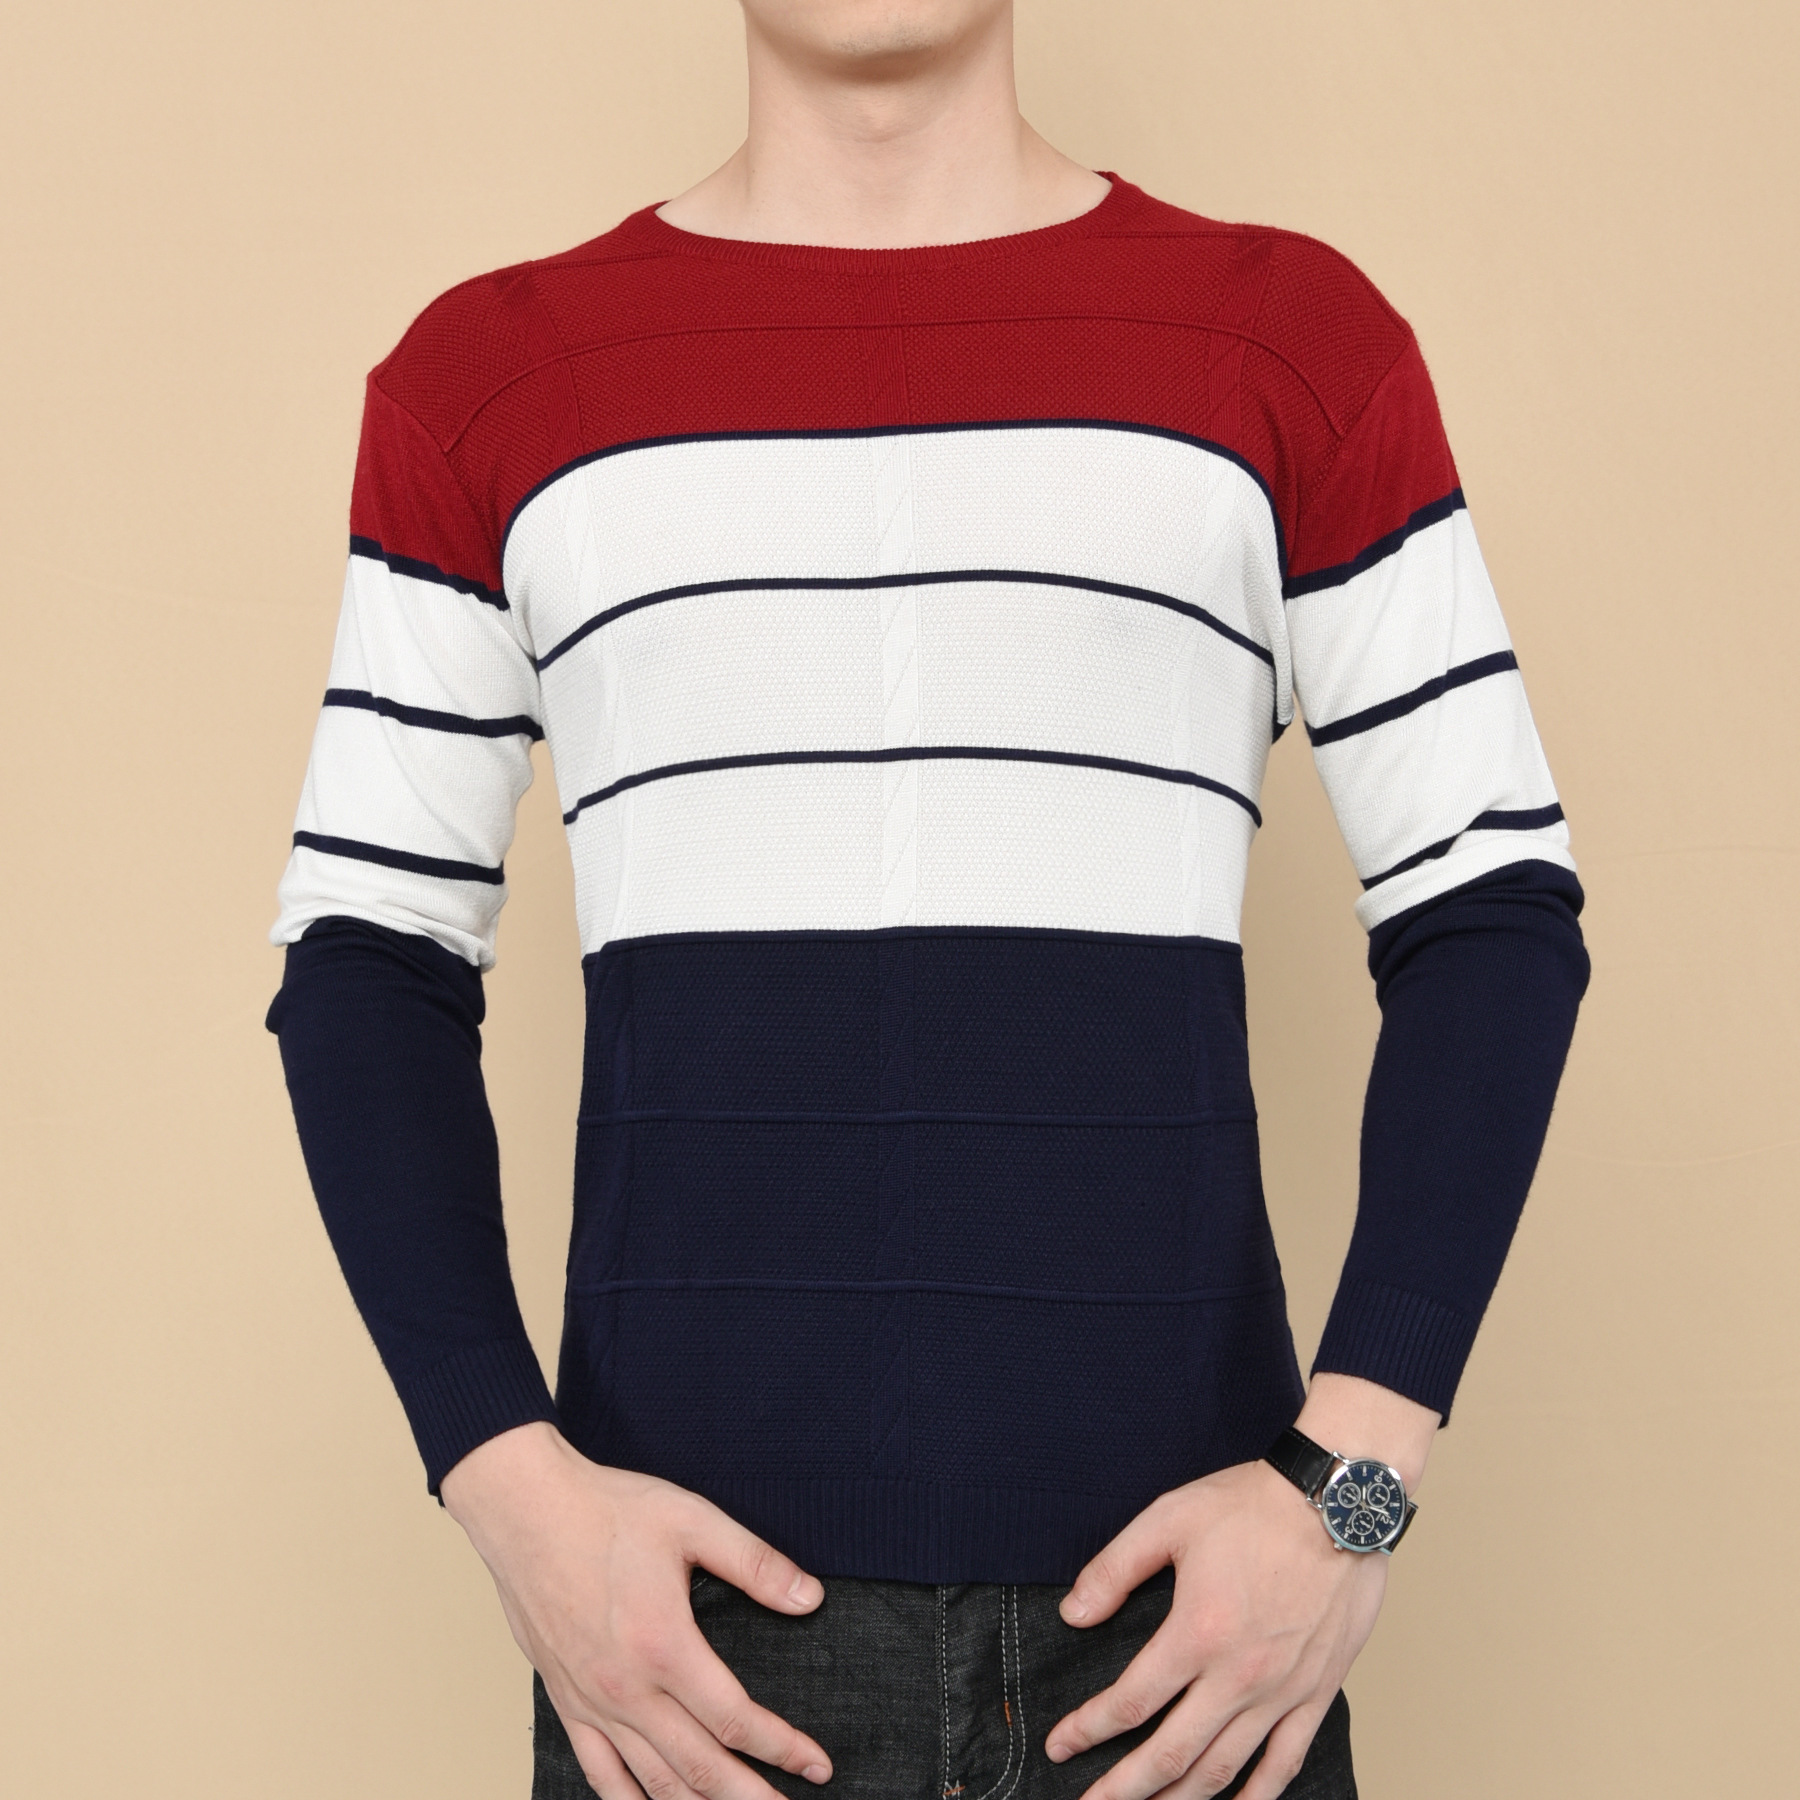 Cheap wholesale 2017 new Autumn Winter Hot selling men fashion casual warm nice Sweater X10-171020Z